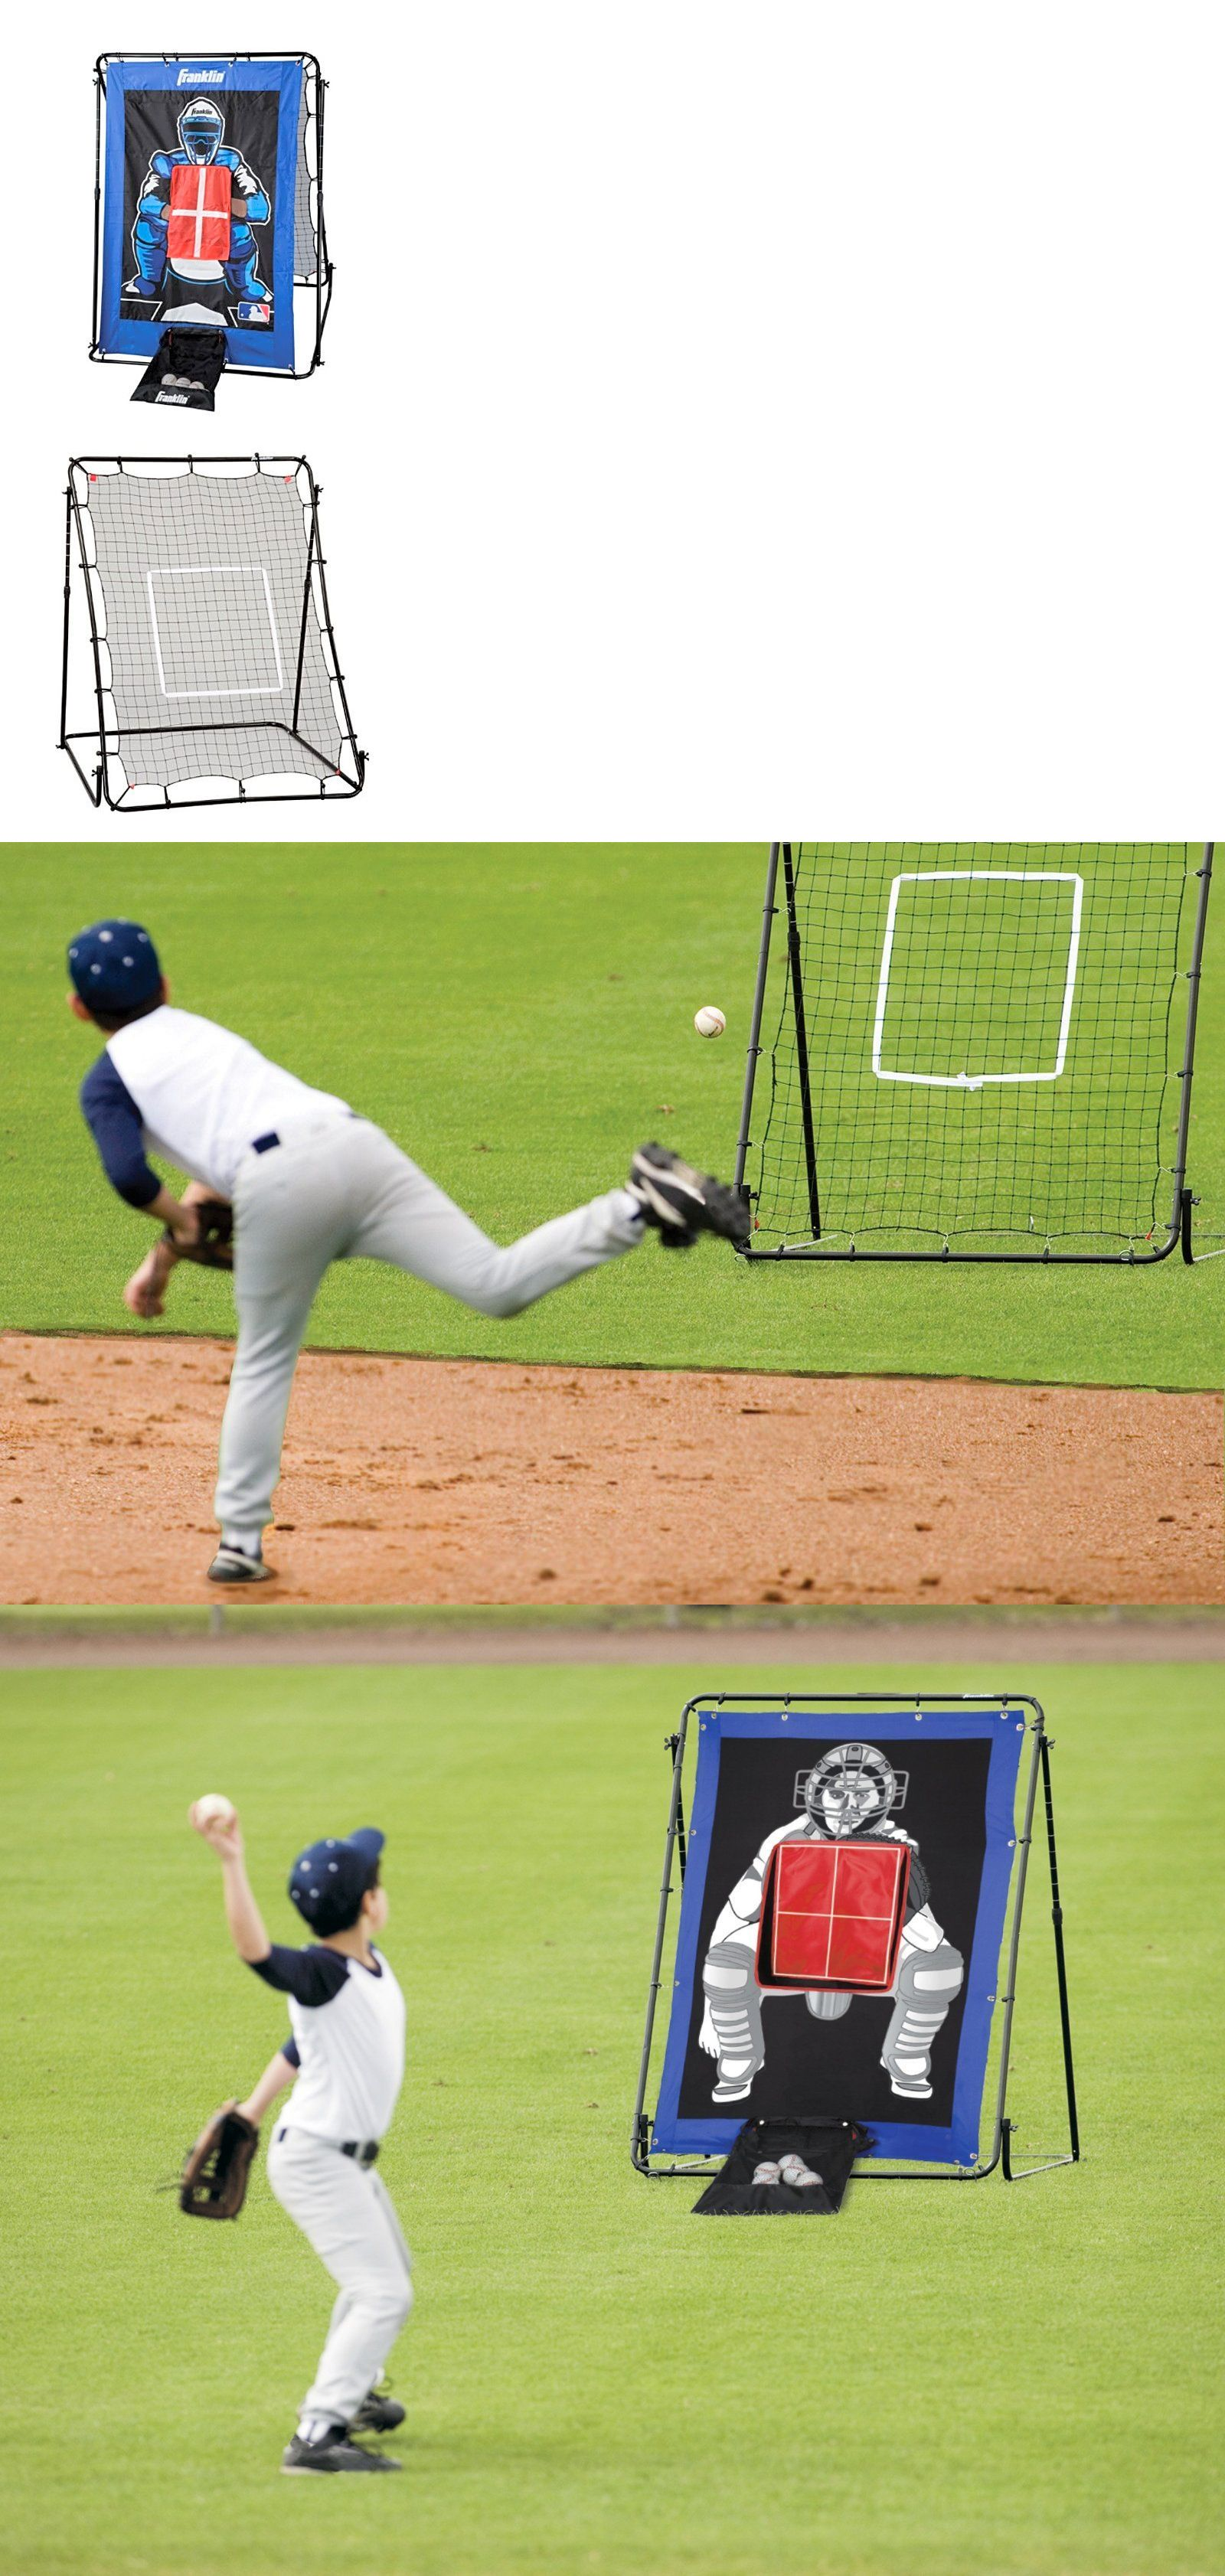 other baseball training aids 181332 baseball pitch target trainer